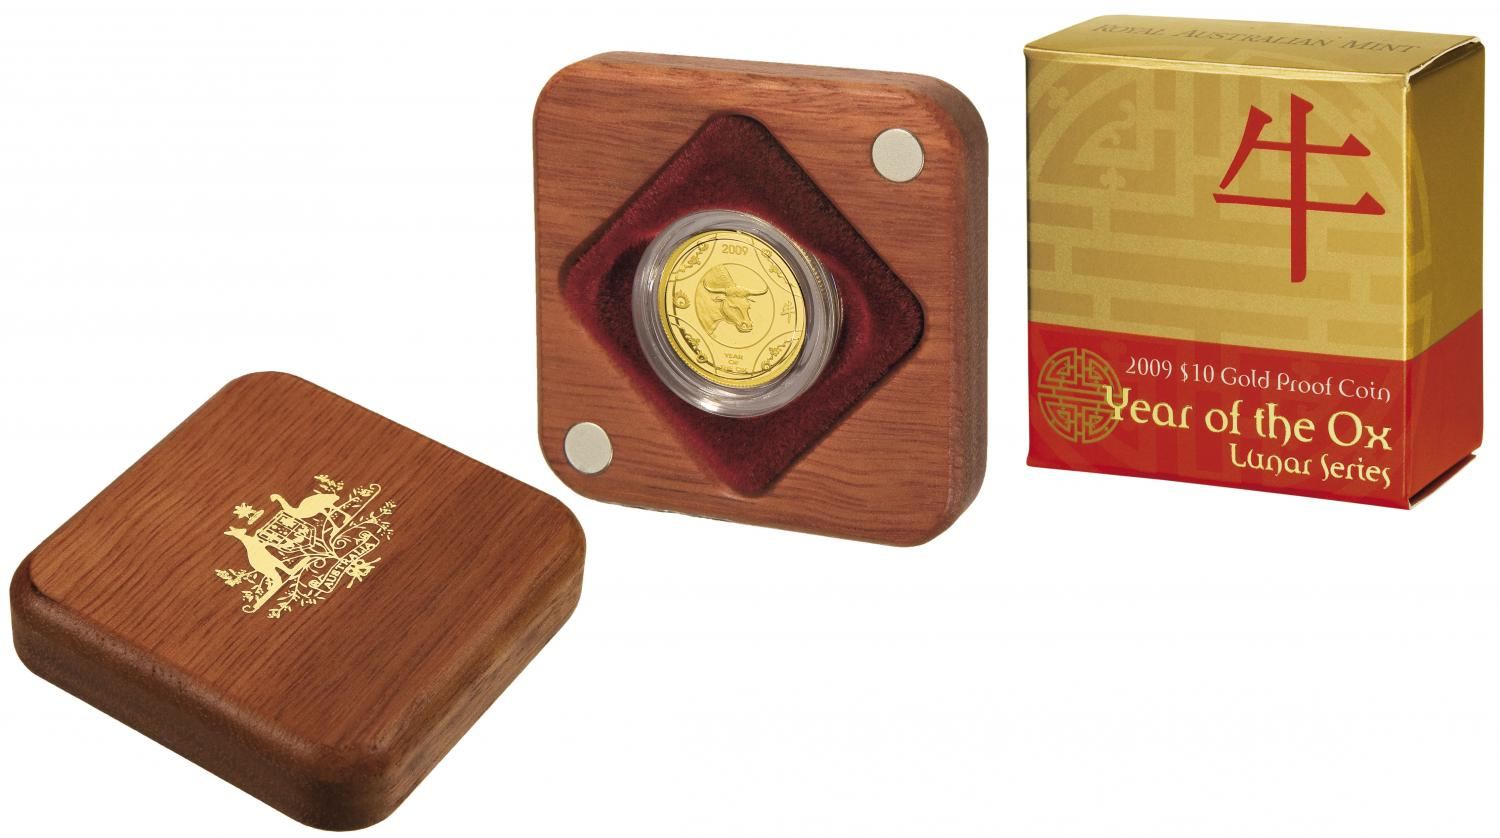 Thumbnail for 2009 Lunar Year of the Ox $10.00 Gold Proof